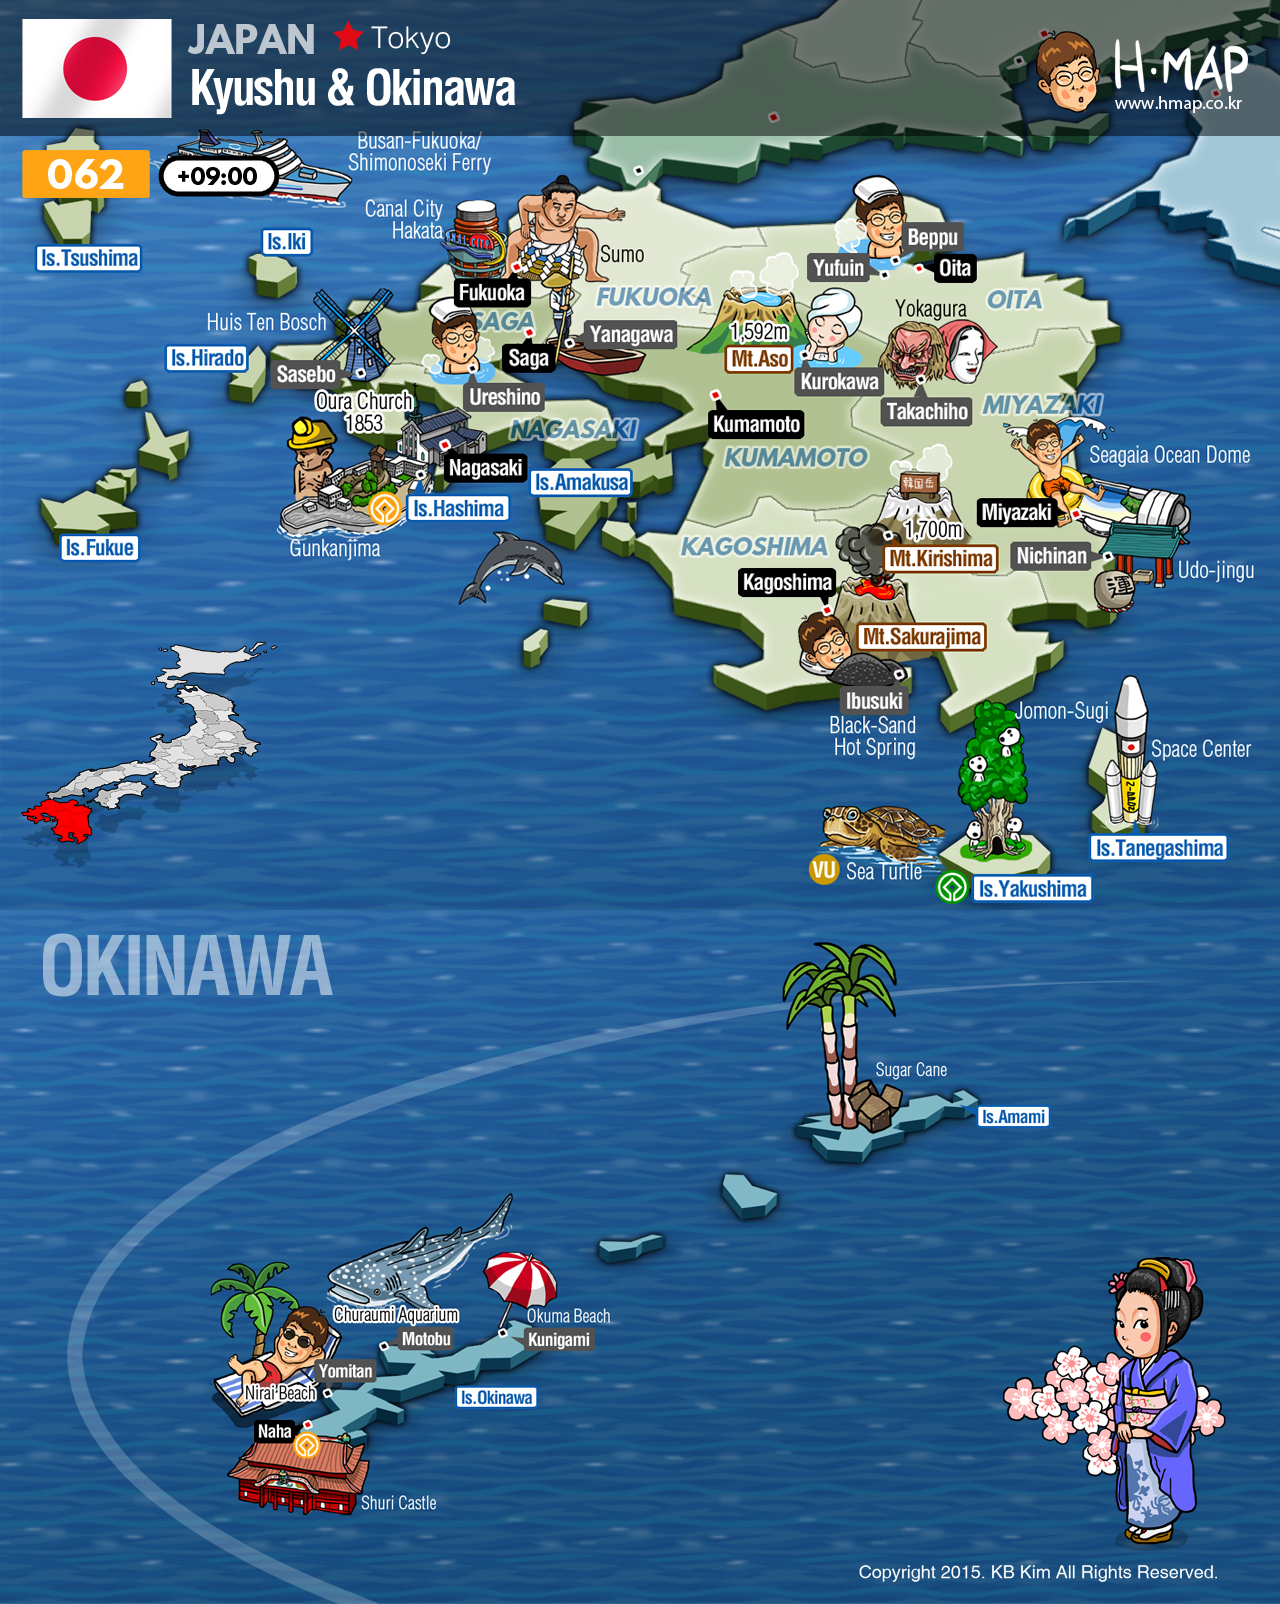 Kyushu Map & Okinawa Map / Illustration, Travel, History ...